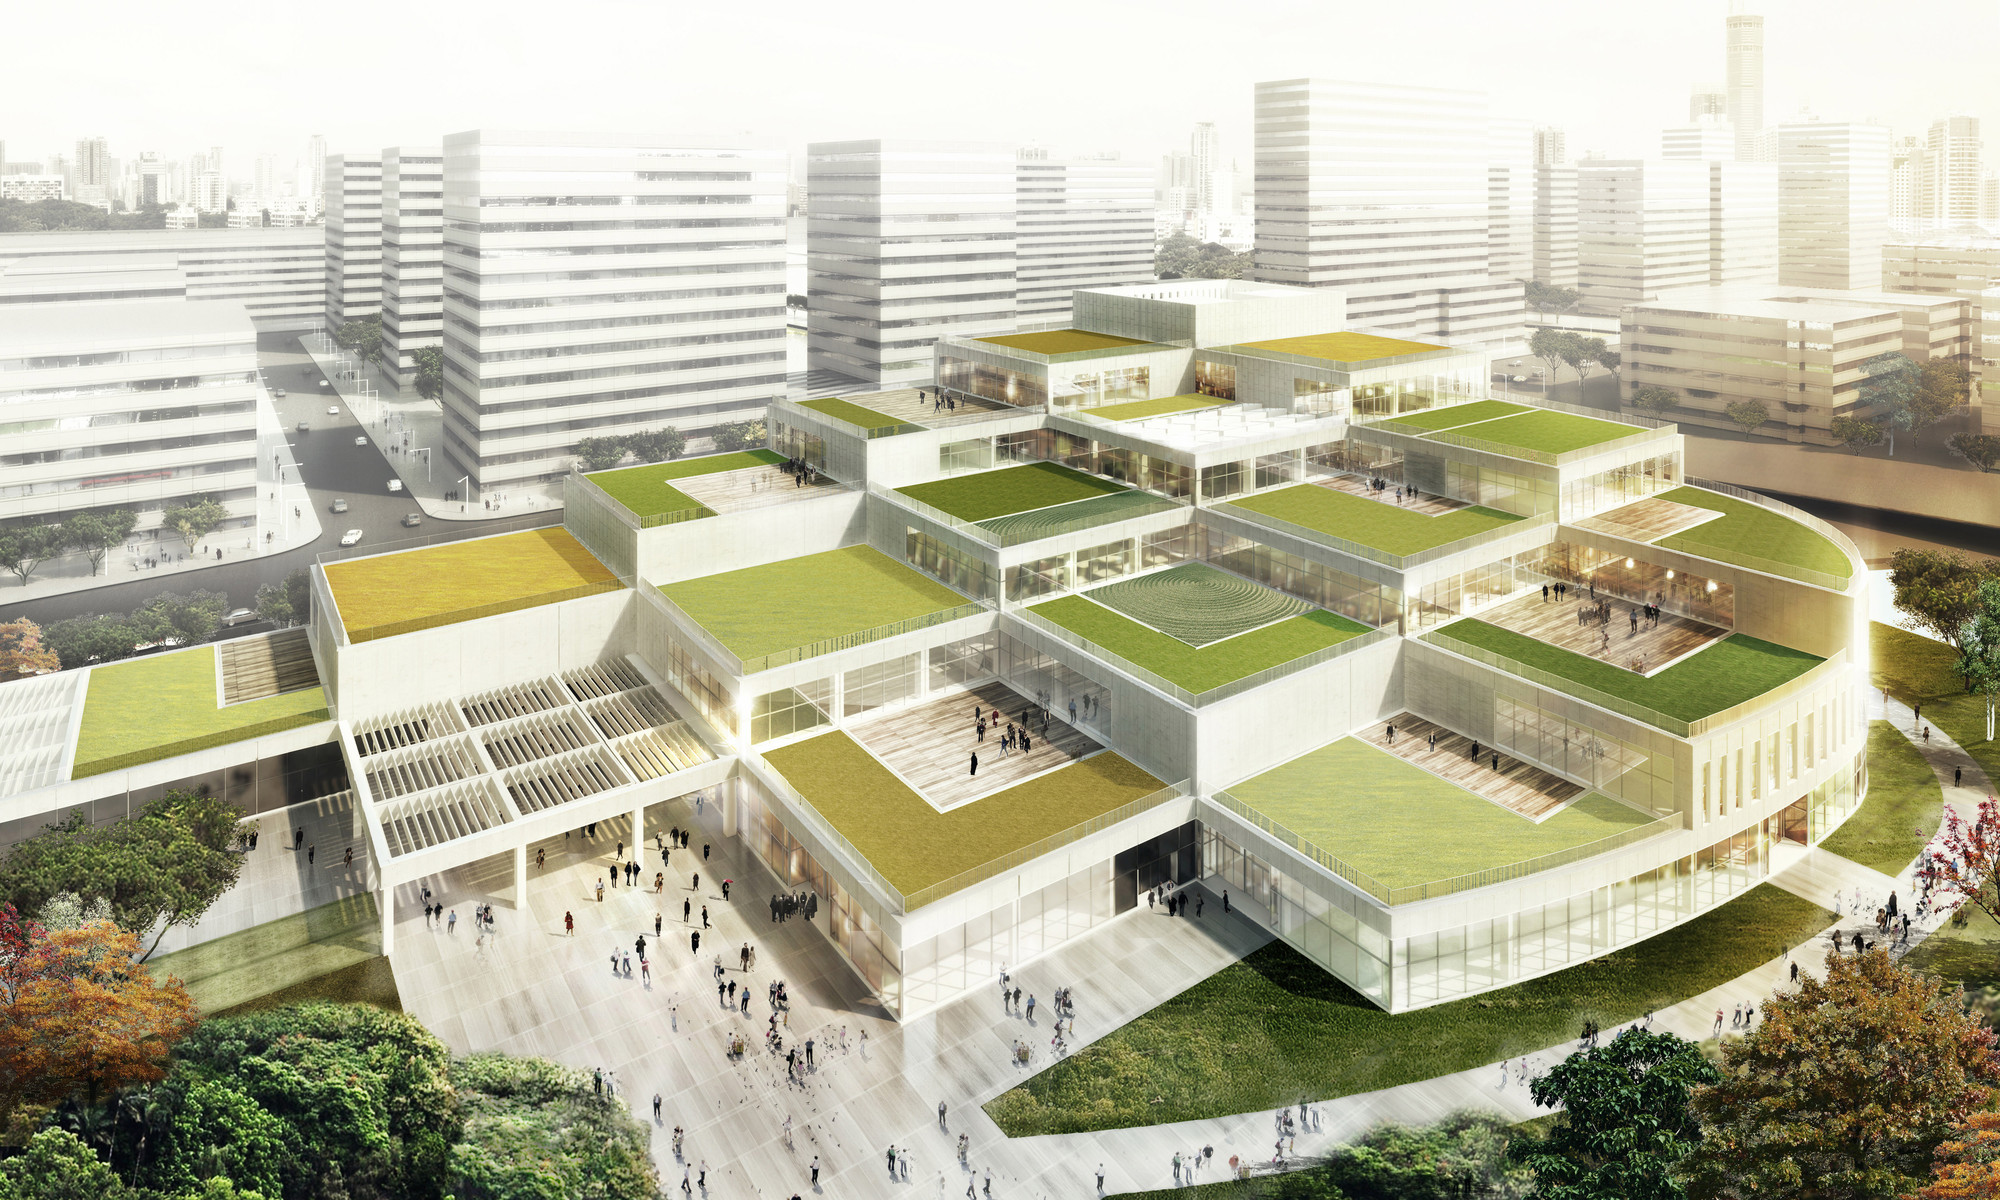 Schmidt hammer lassen designs cultural hub for ningbo s for Architecture design sites